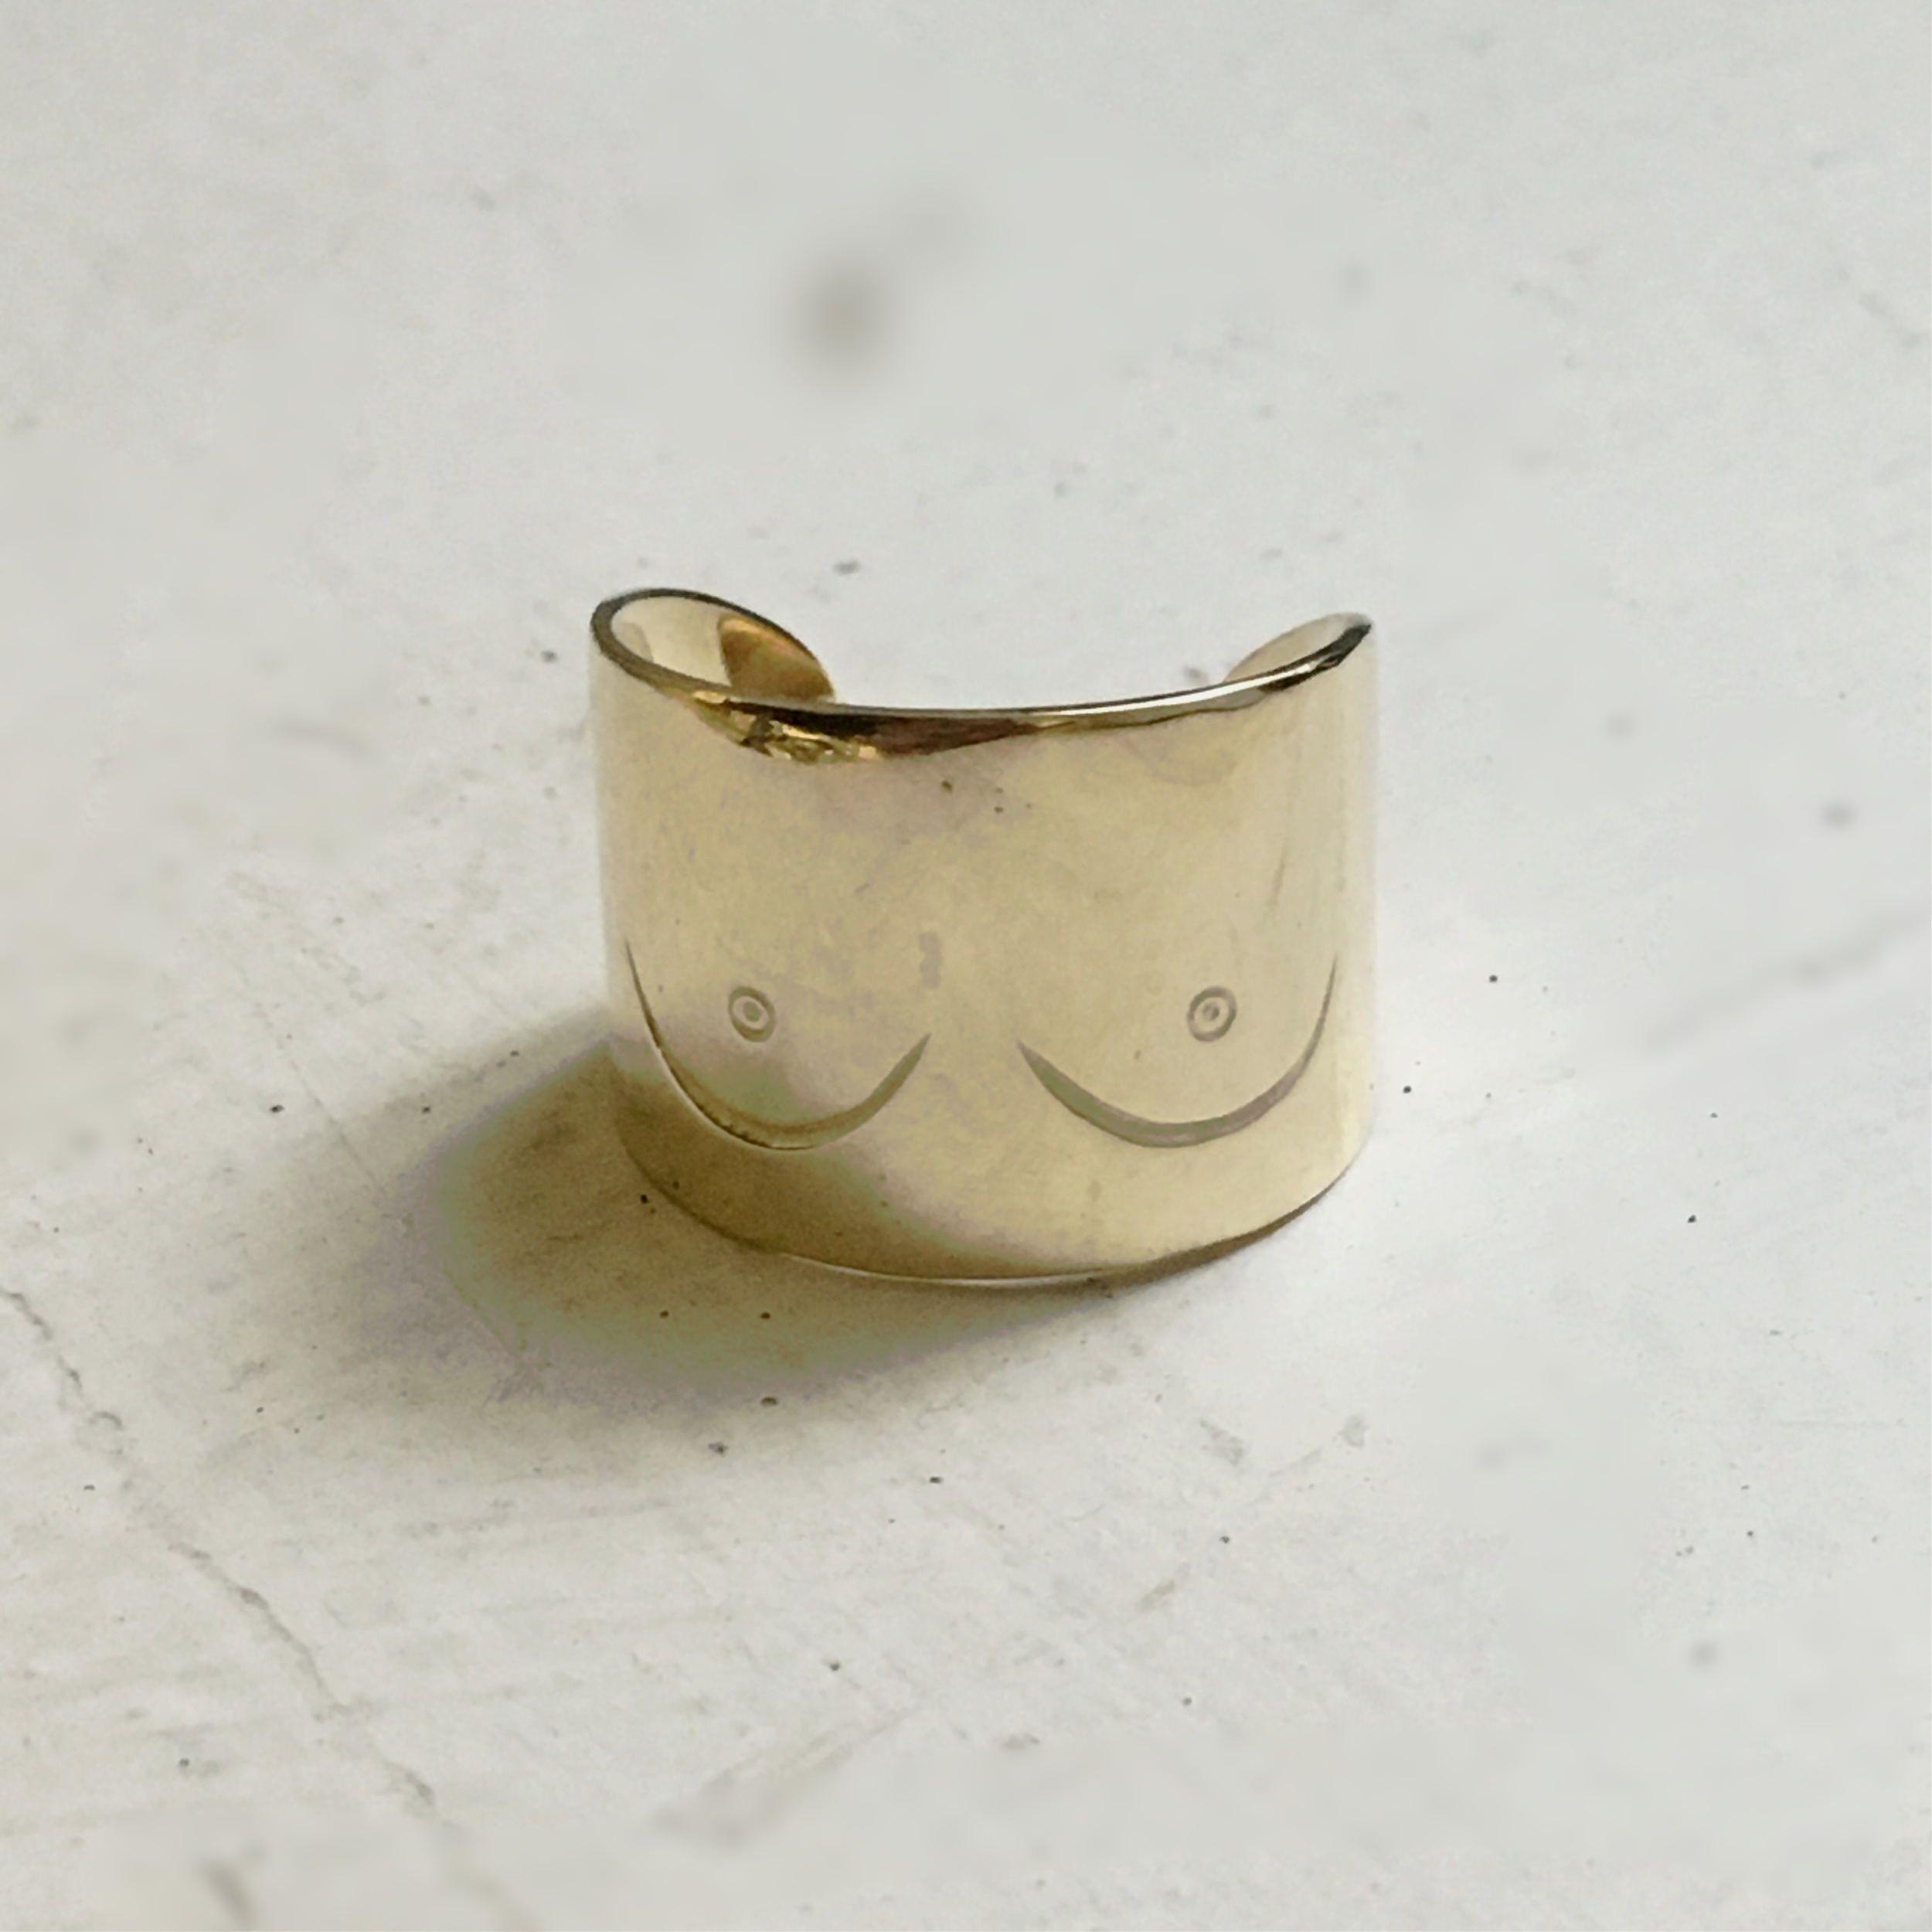 BOOBY RING YELLOW GOLD FEMINIST BOOB JEWELRY